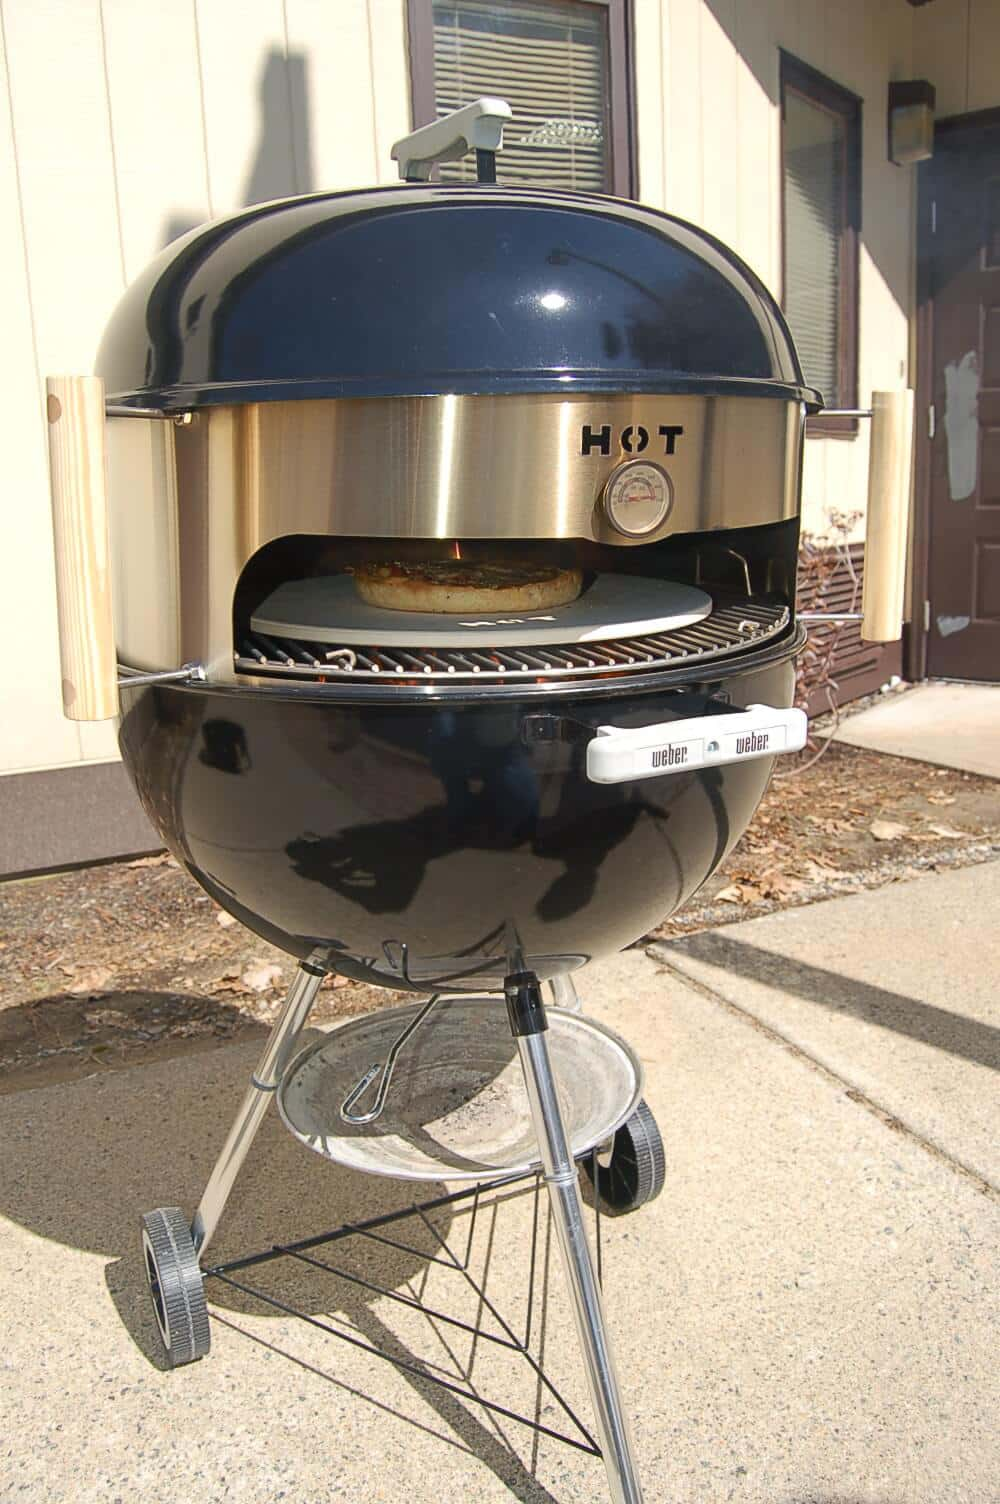 Kettle Pizza Oven in Stainless Steel